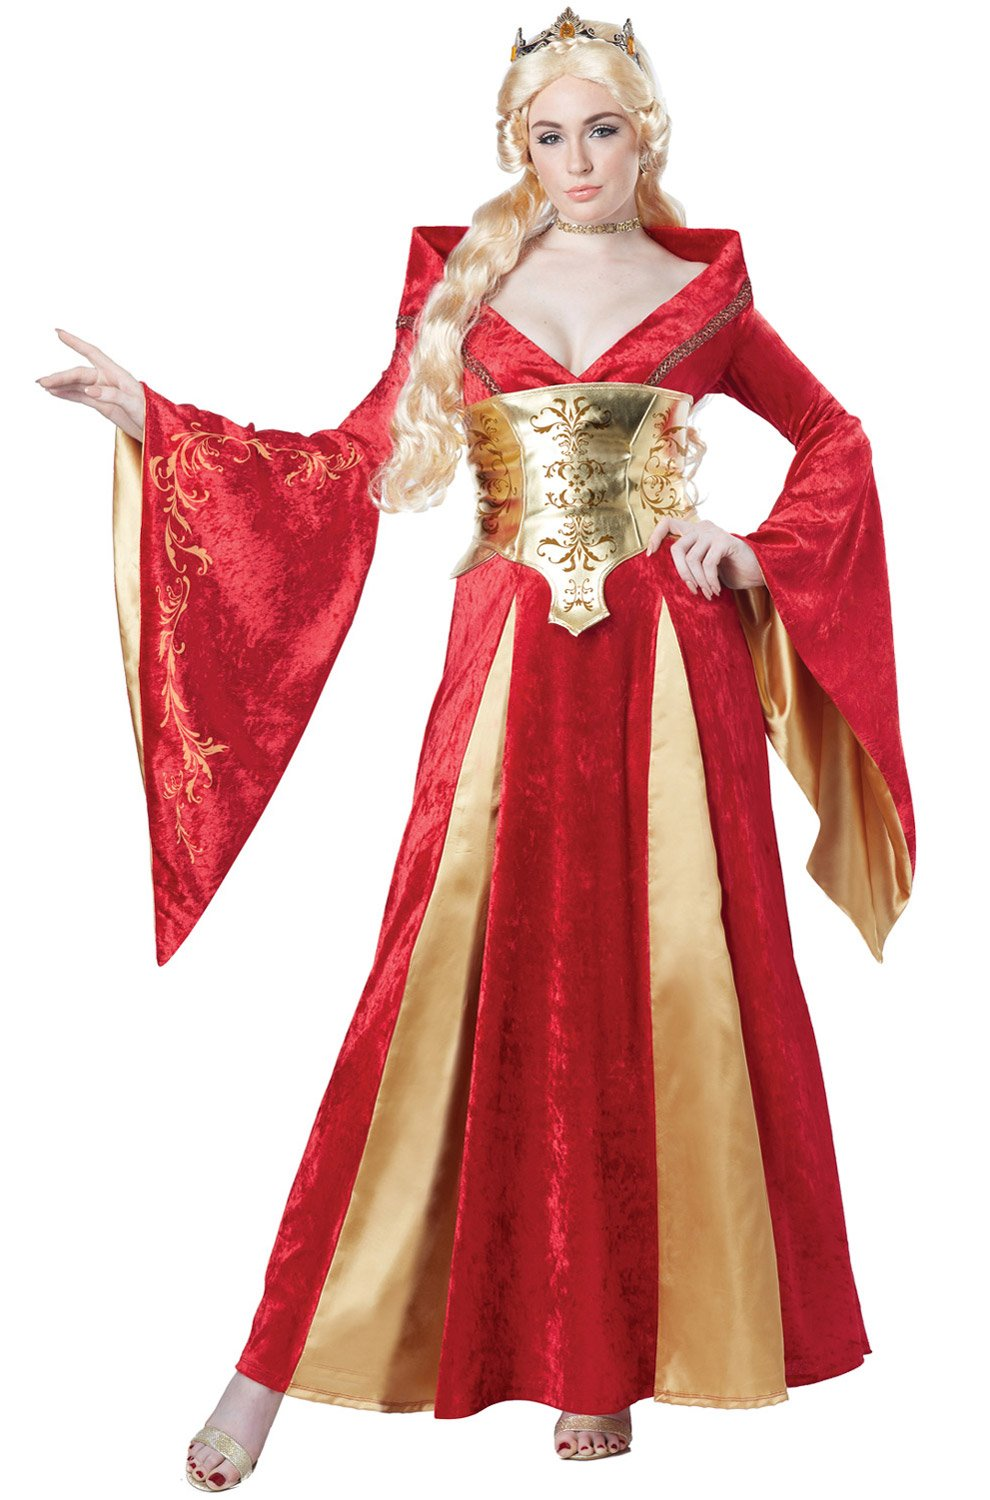 California Costumes Women's Medieval Queen Costume, Red/Gold, Large